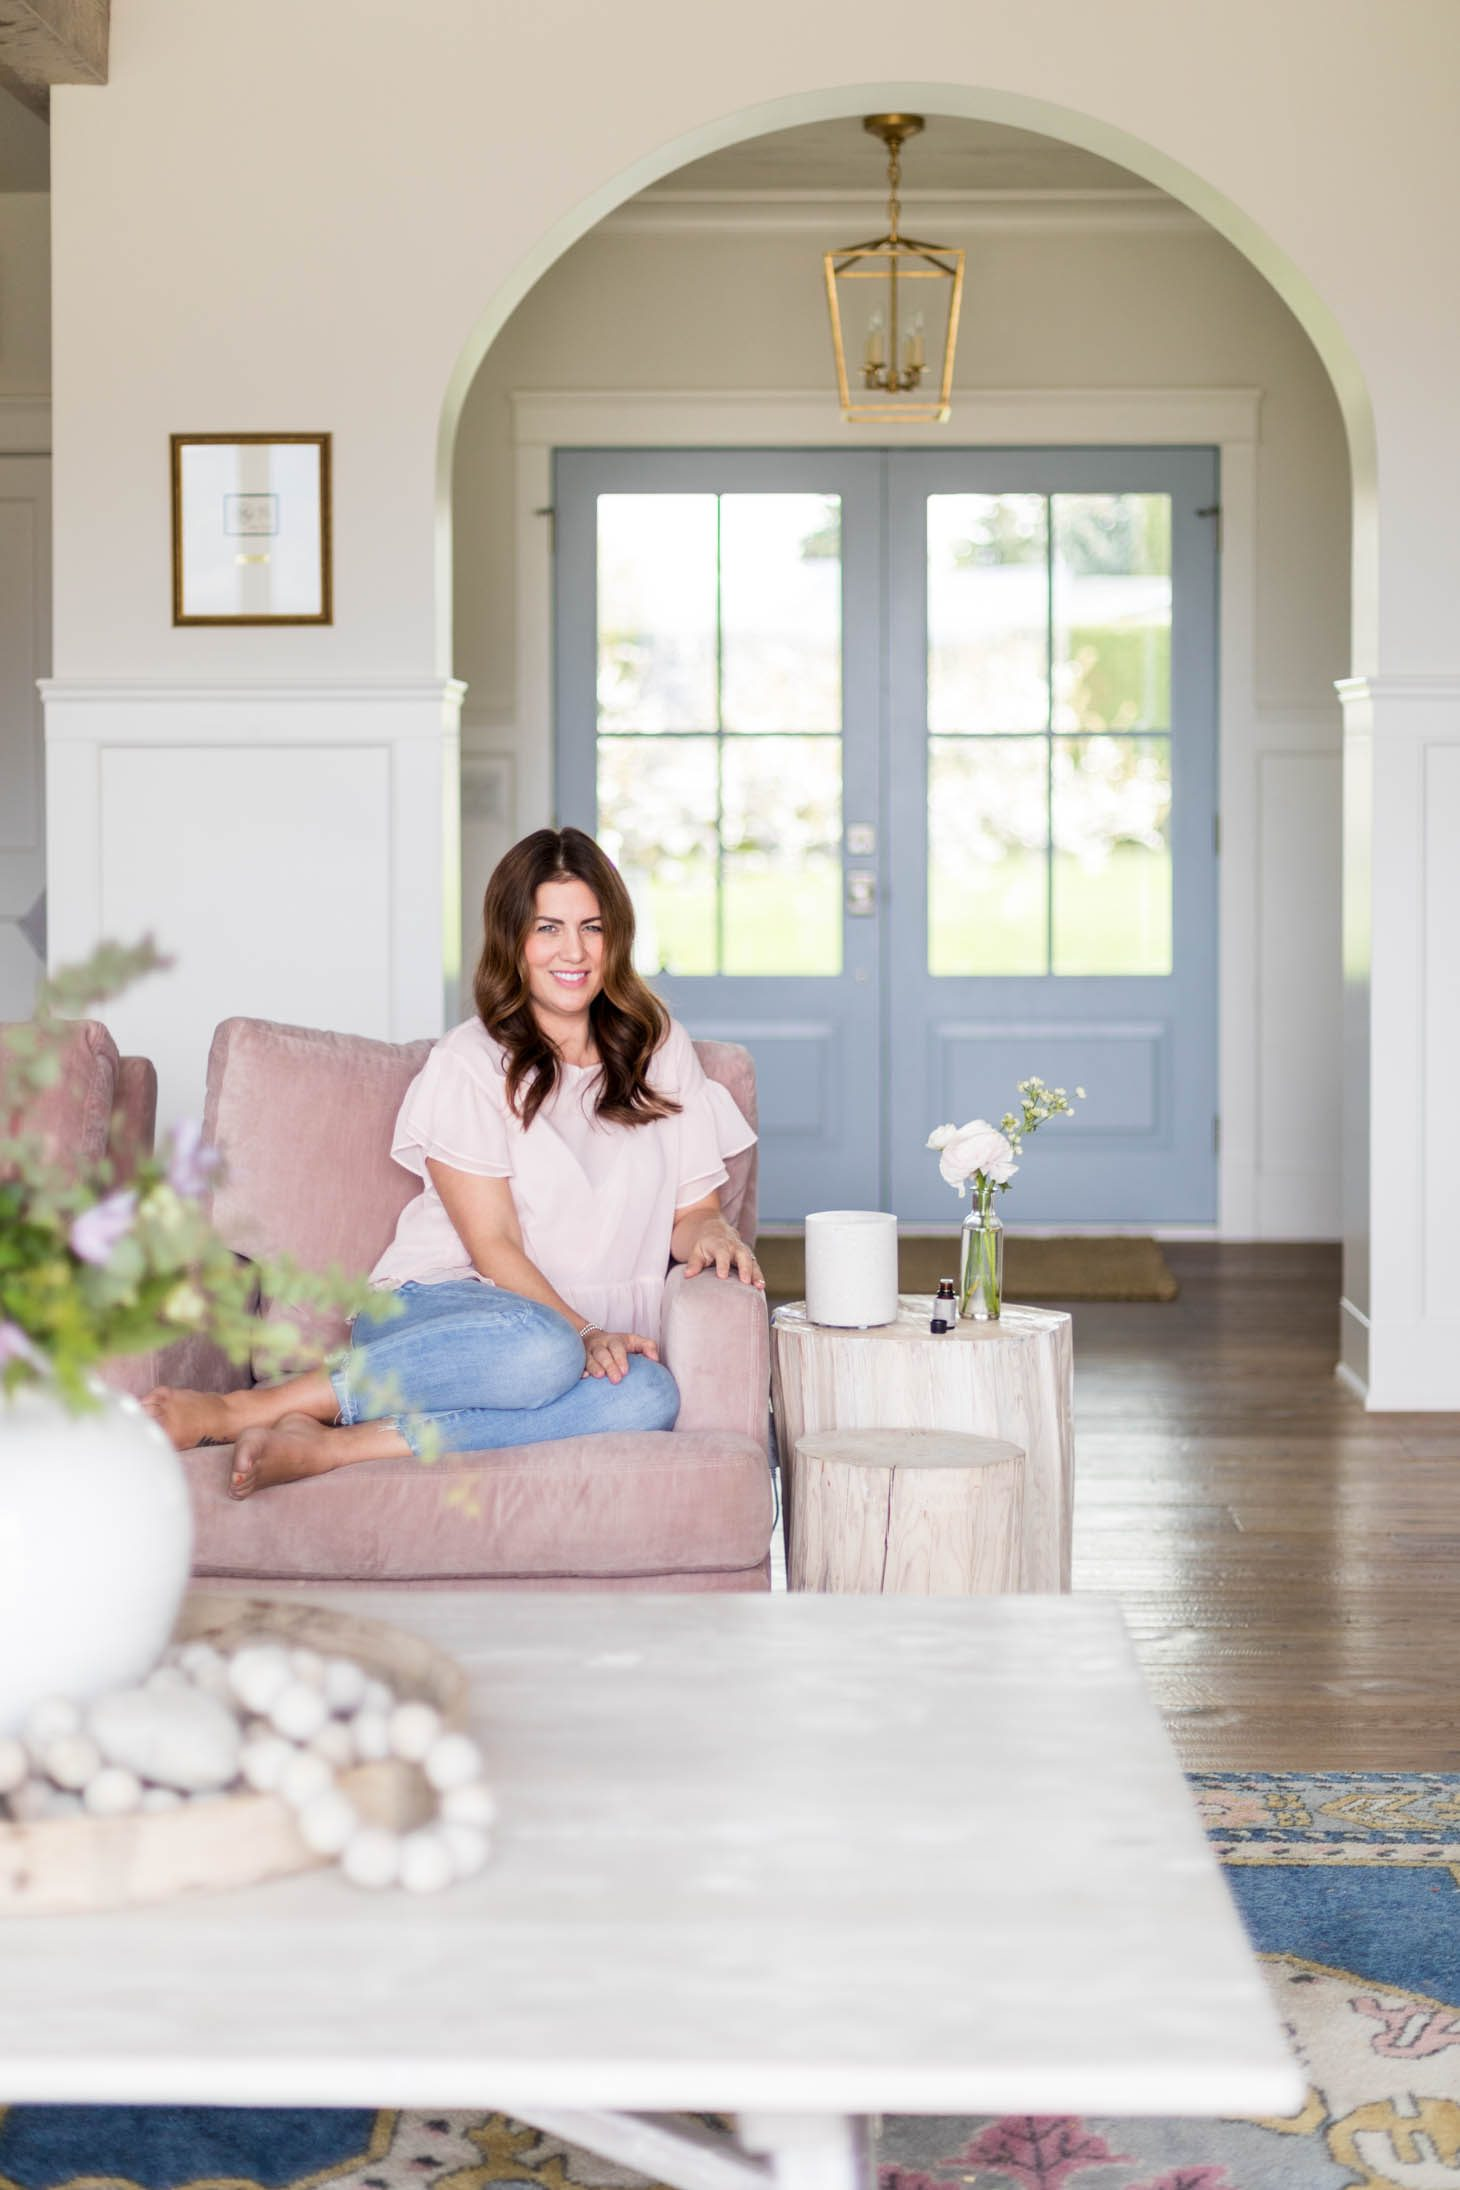 Jillian Harris x Saje Wellness Diffuser Collaboration